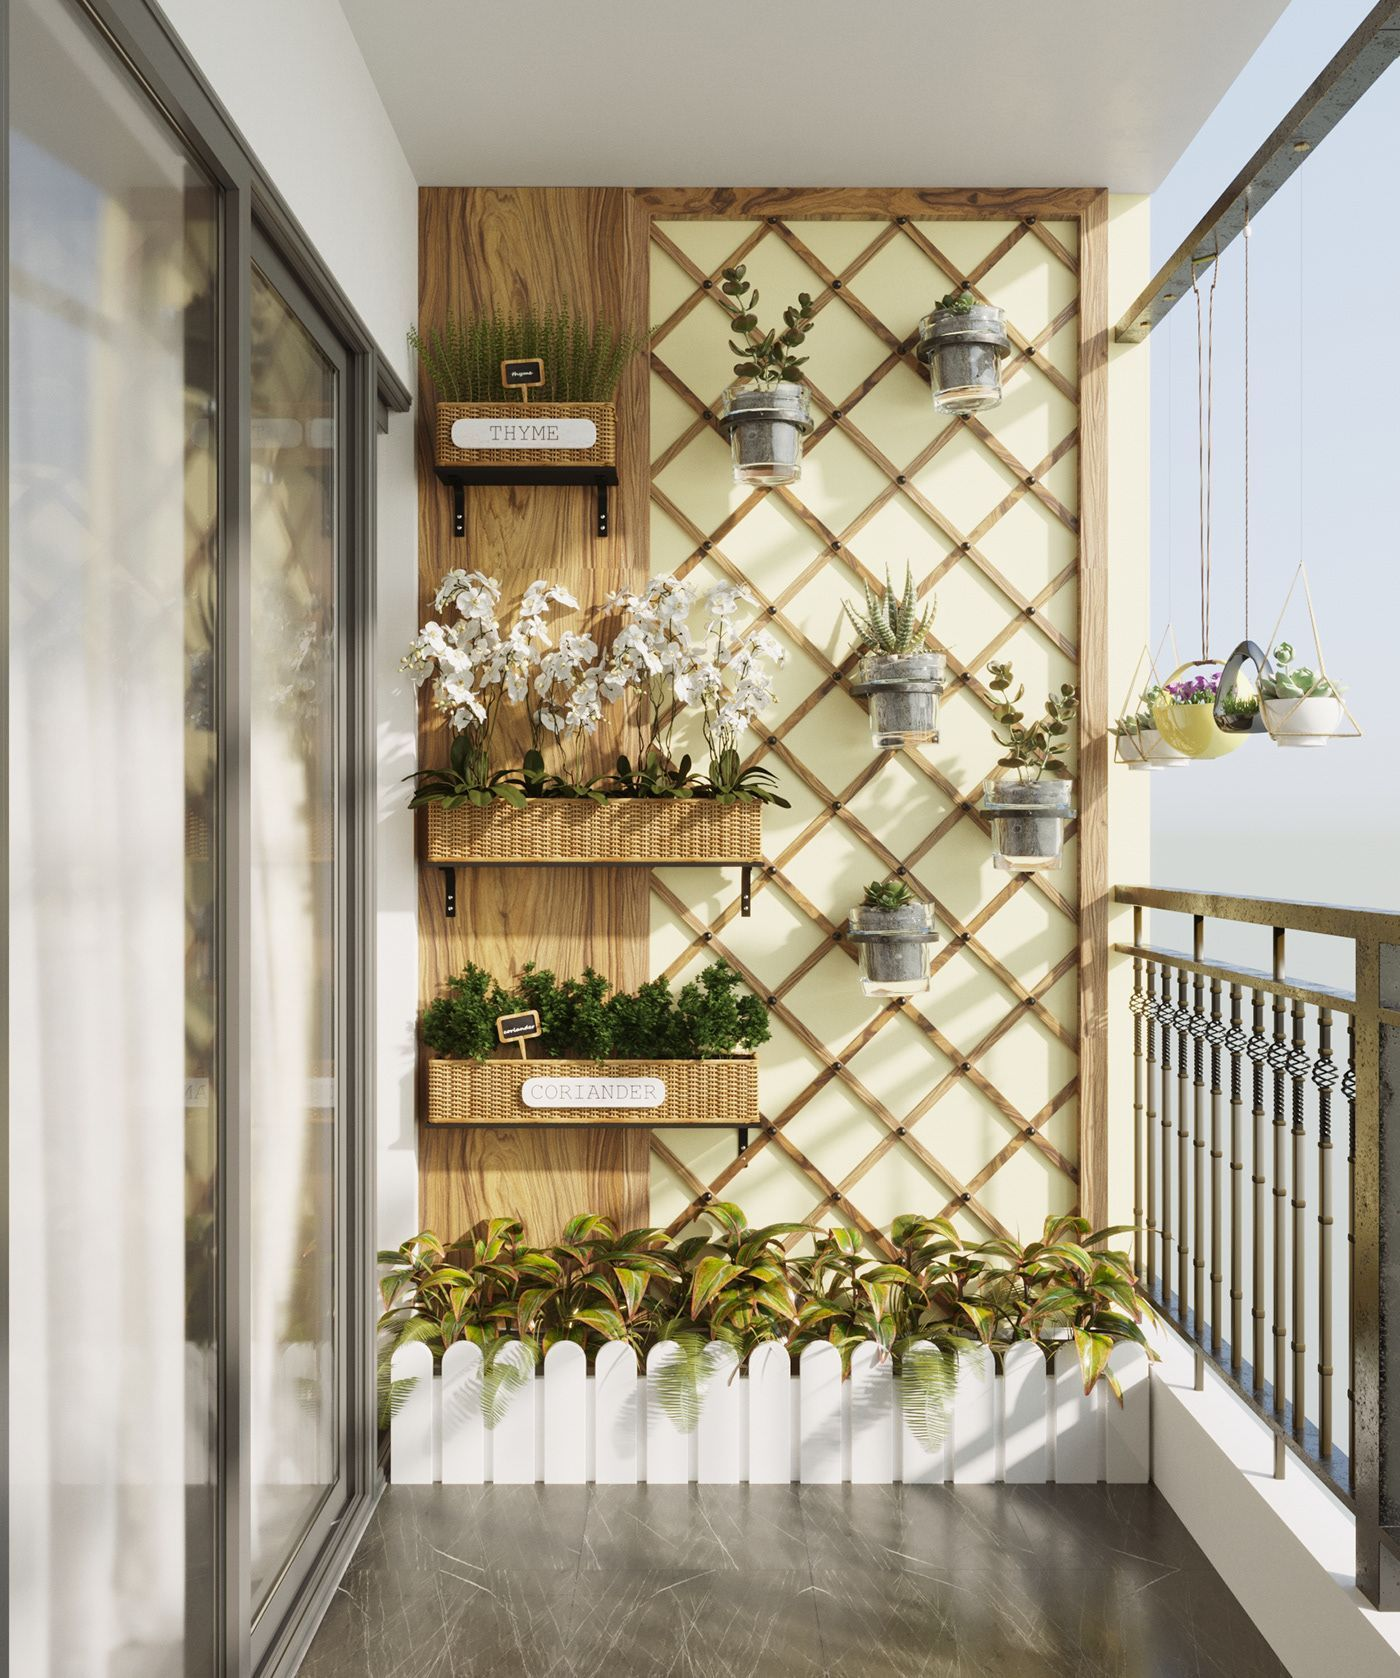 A beautiful balcony with many small fresh tree and gently